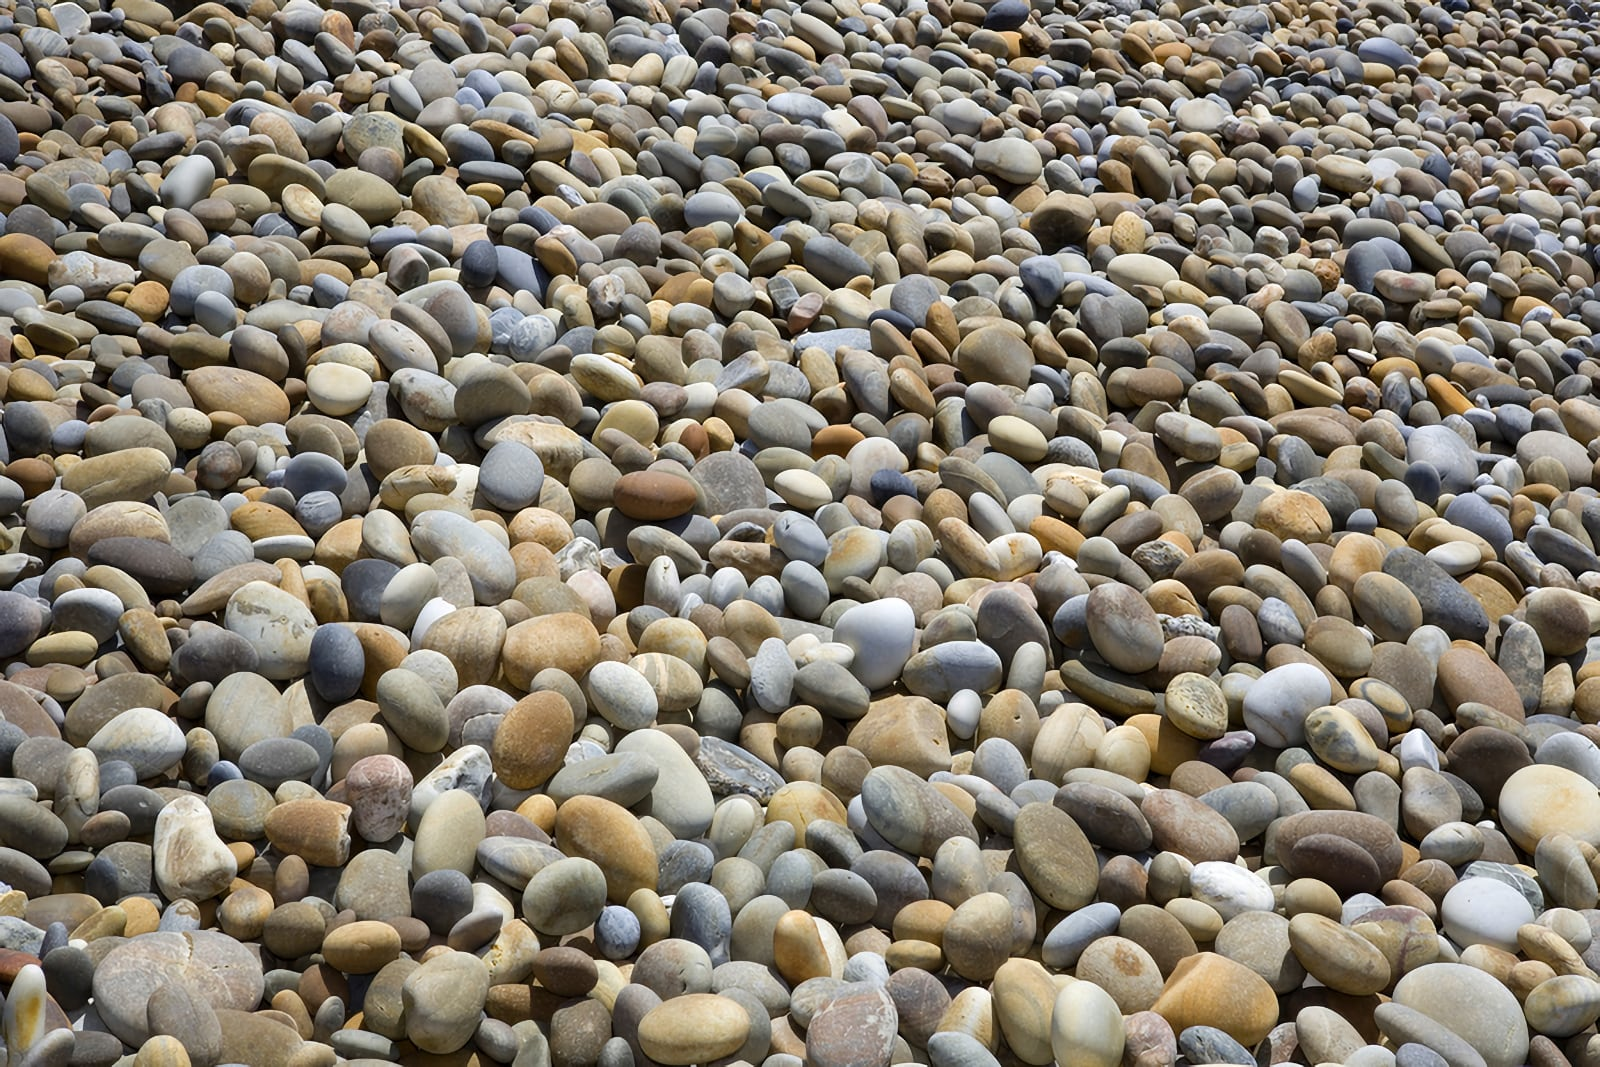 A seaside beach full of stone pebbles of different sizes, shapes, and colours